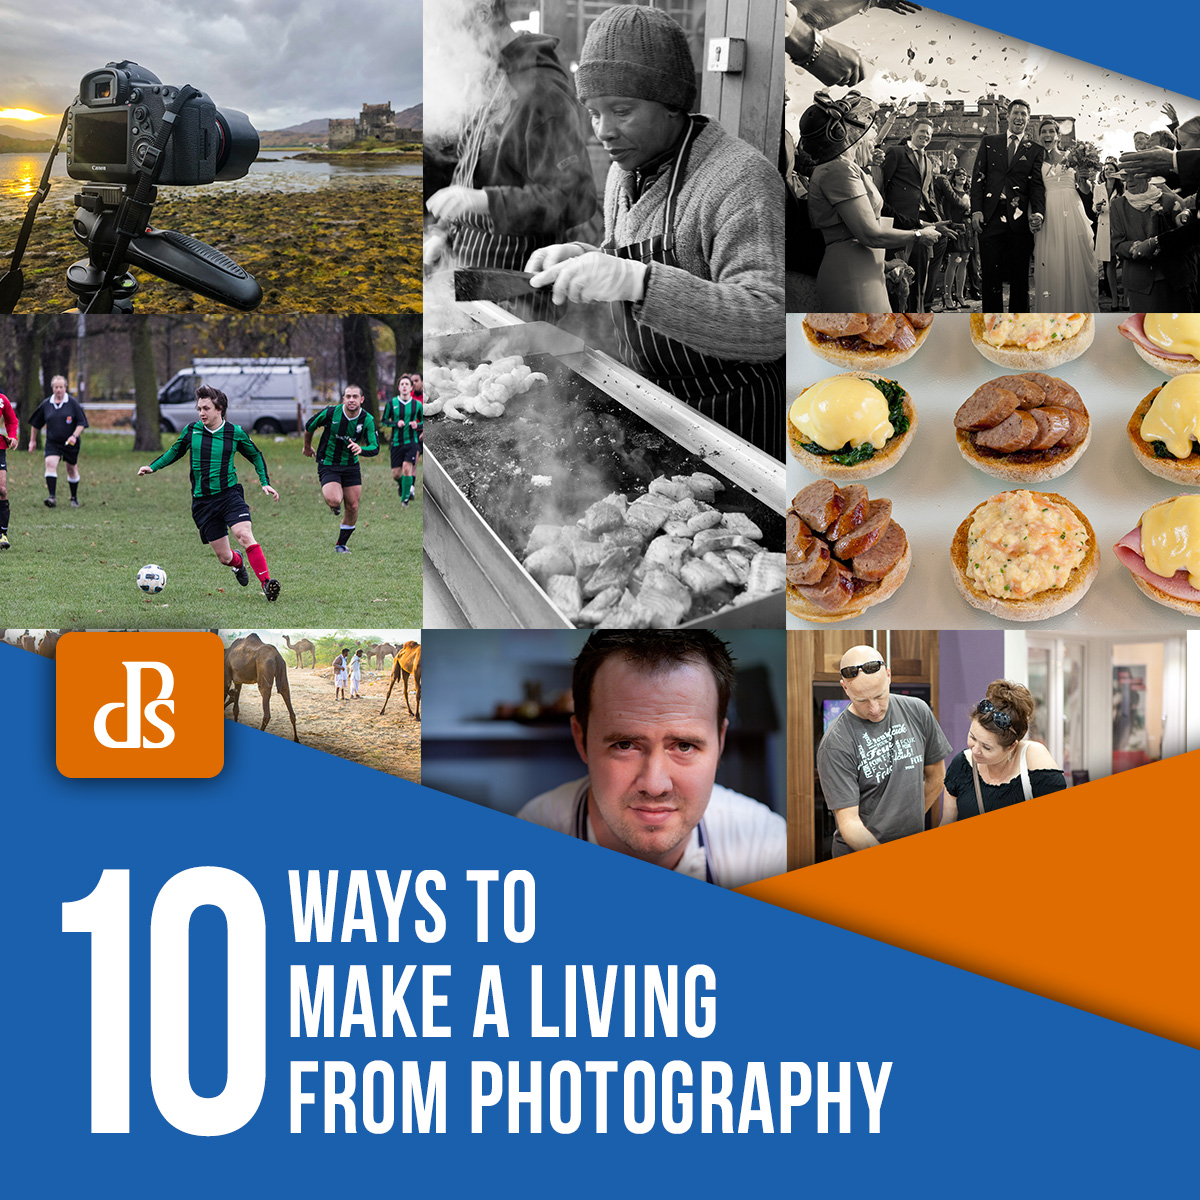 10-ways-to-make-a-living-from-photography